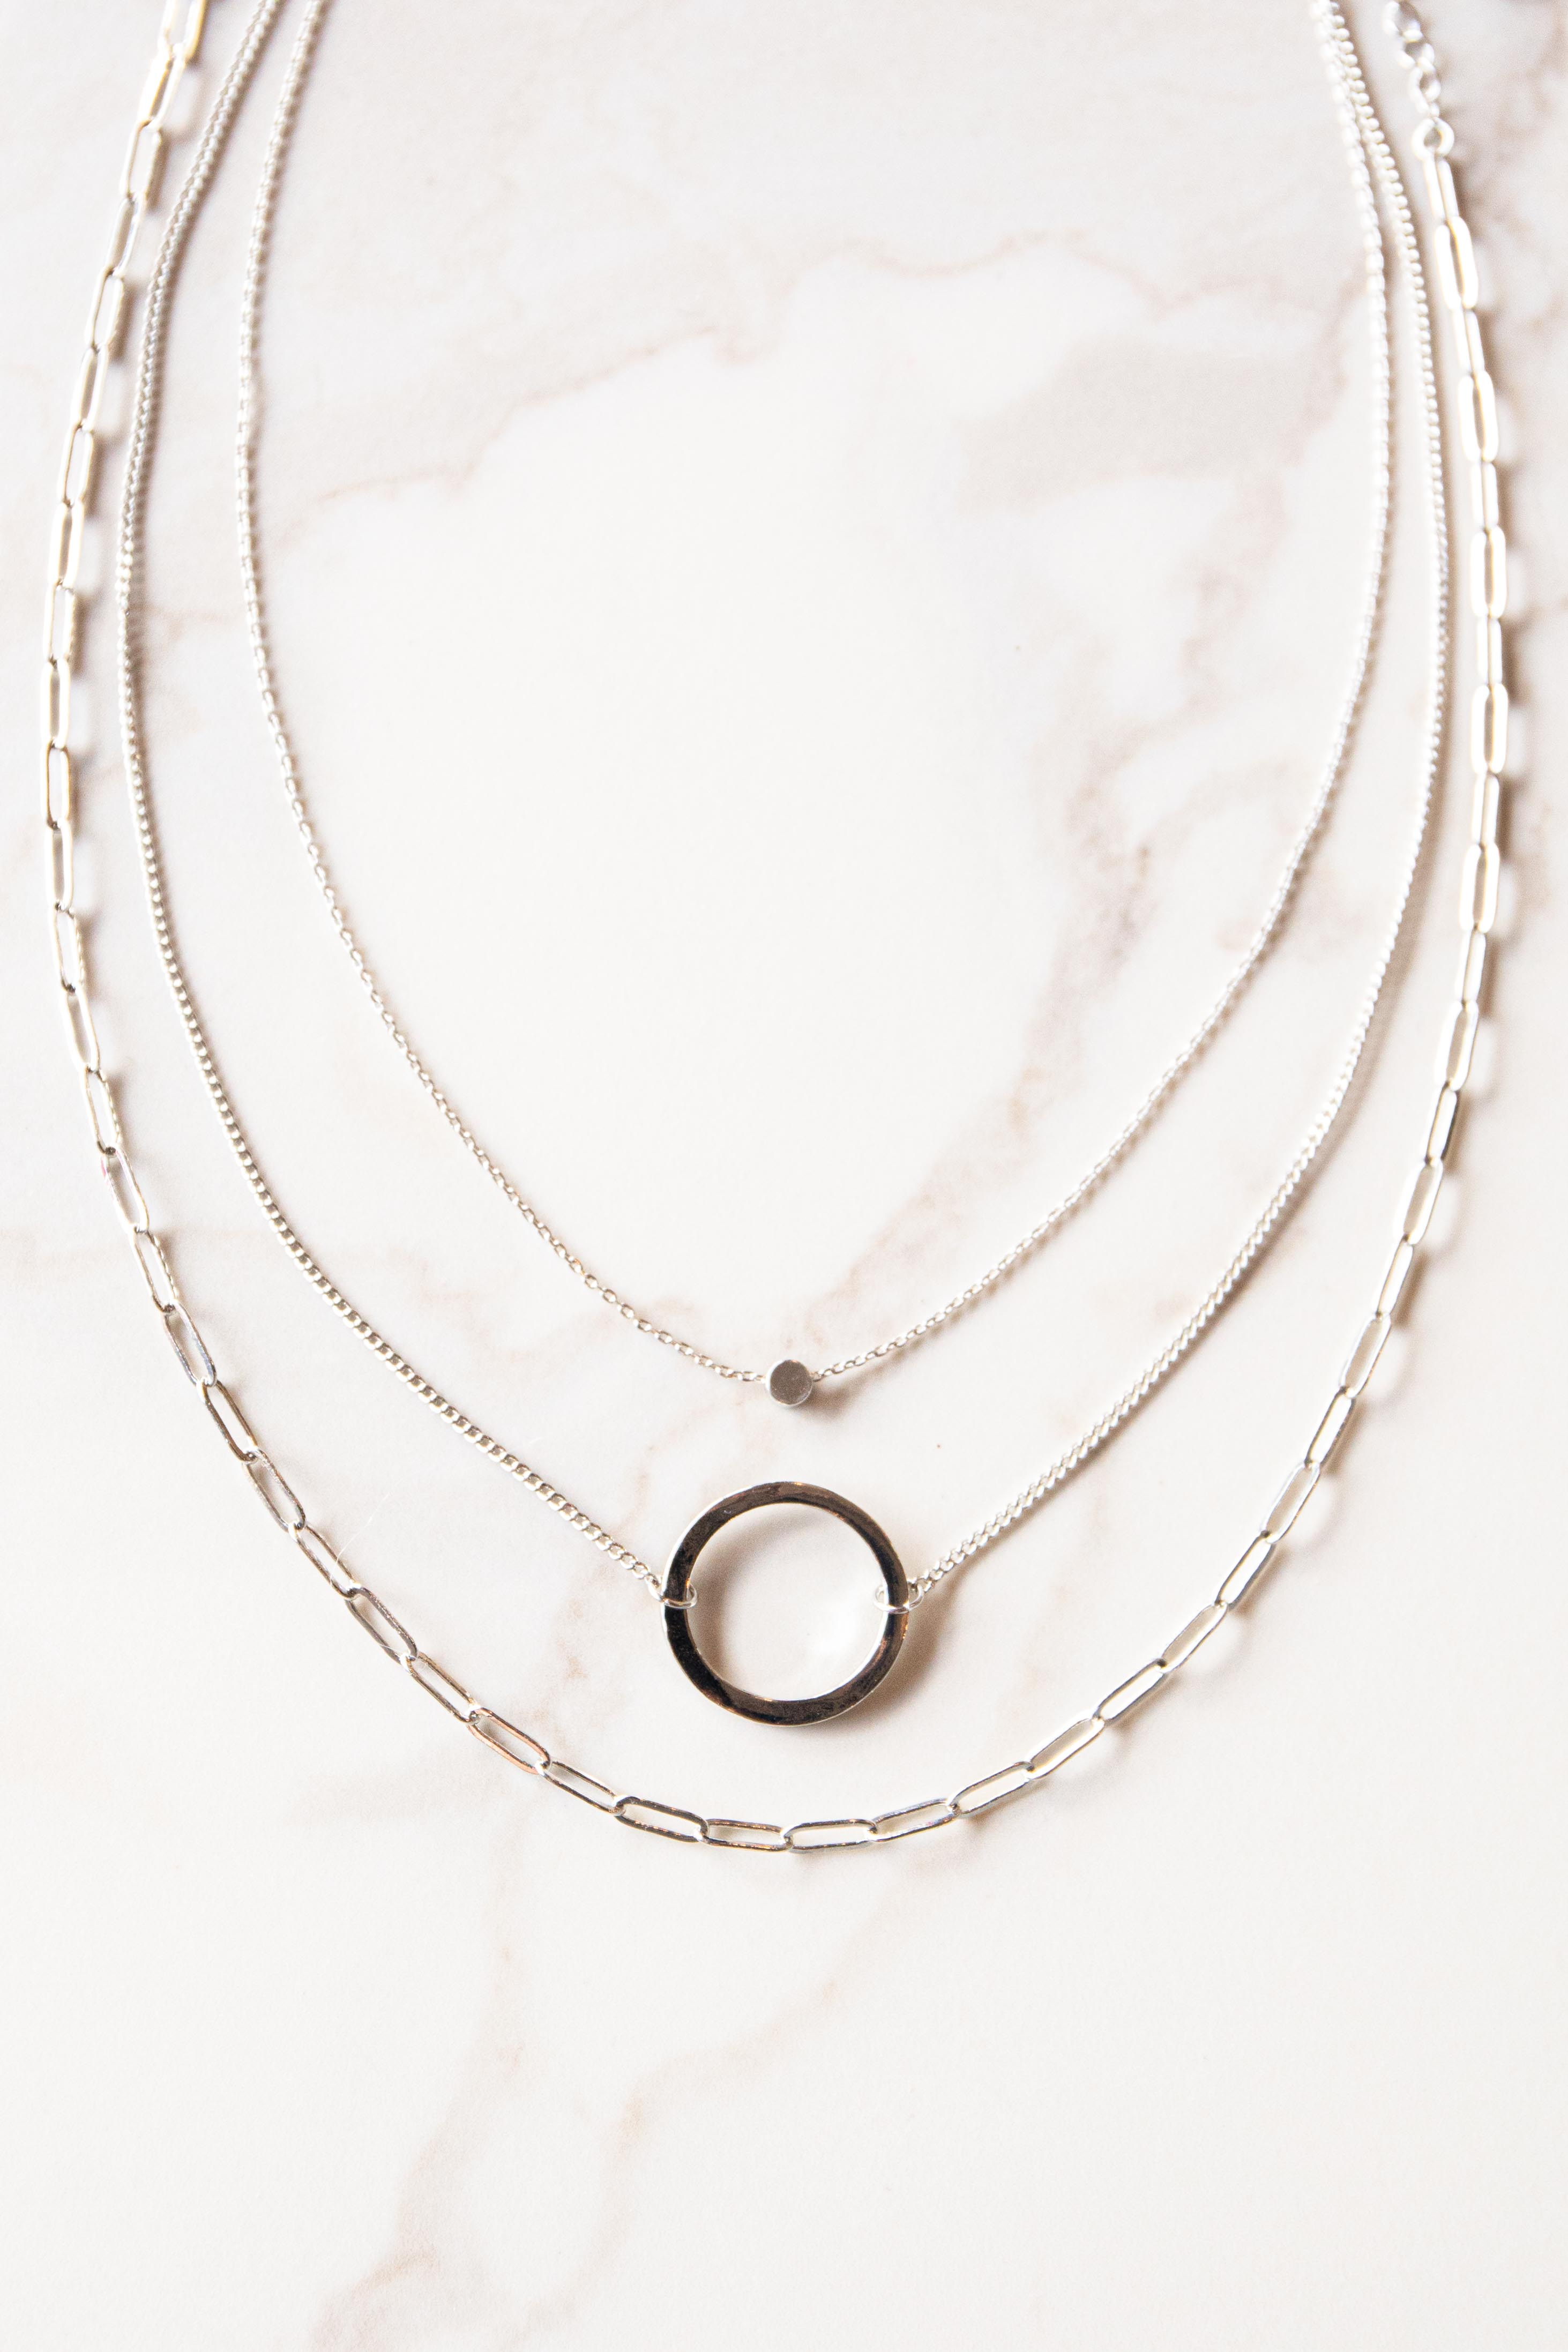 Silver Circle Pendant Layered Chain Necklace